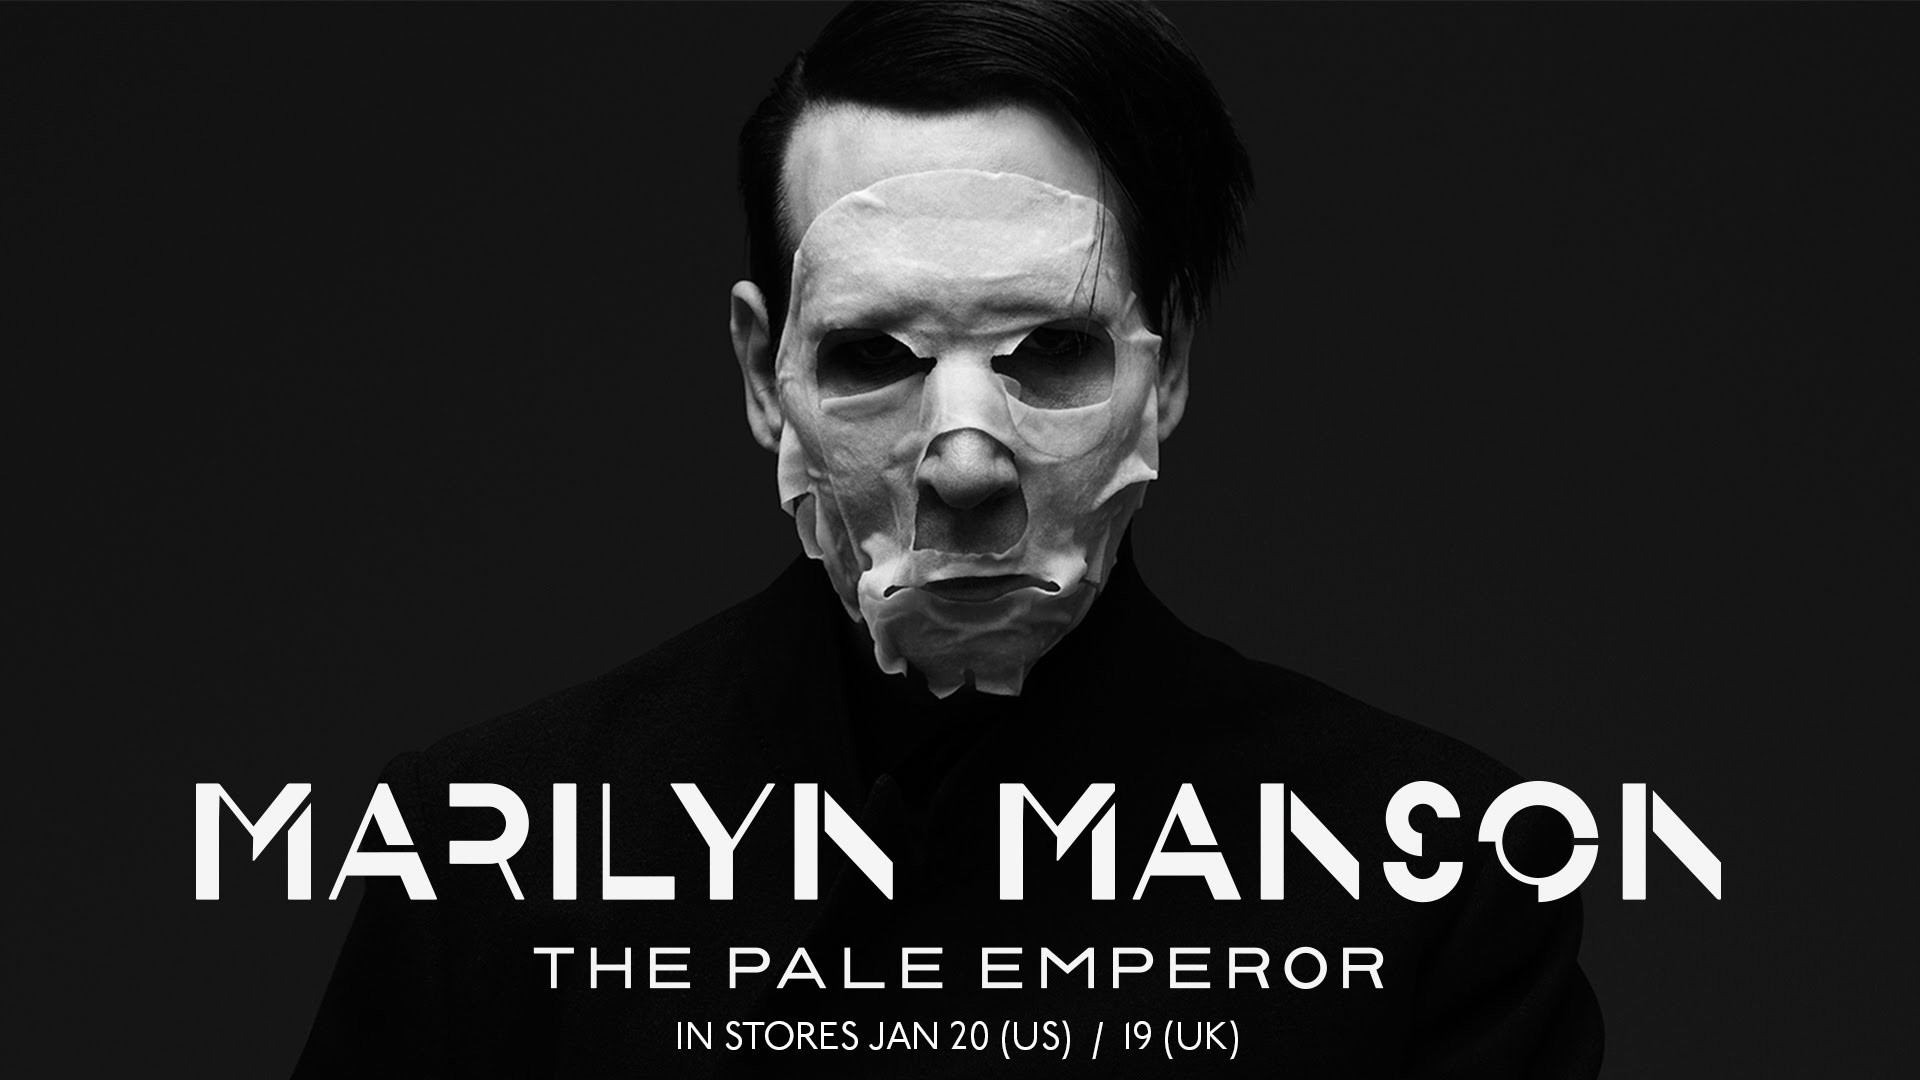 Marilyn manson schedule dates events and tickets axs marilyn manson unveils 2015 tour dates in canada kristyandbryce Choice Image